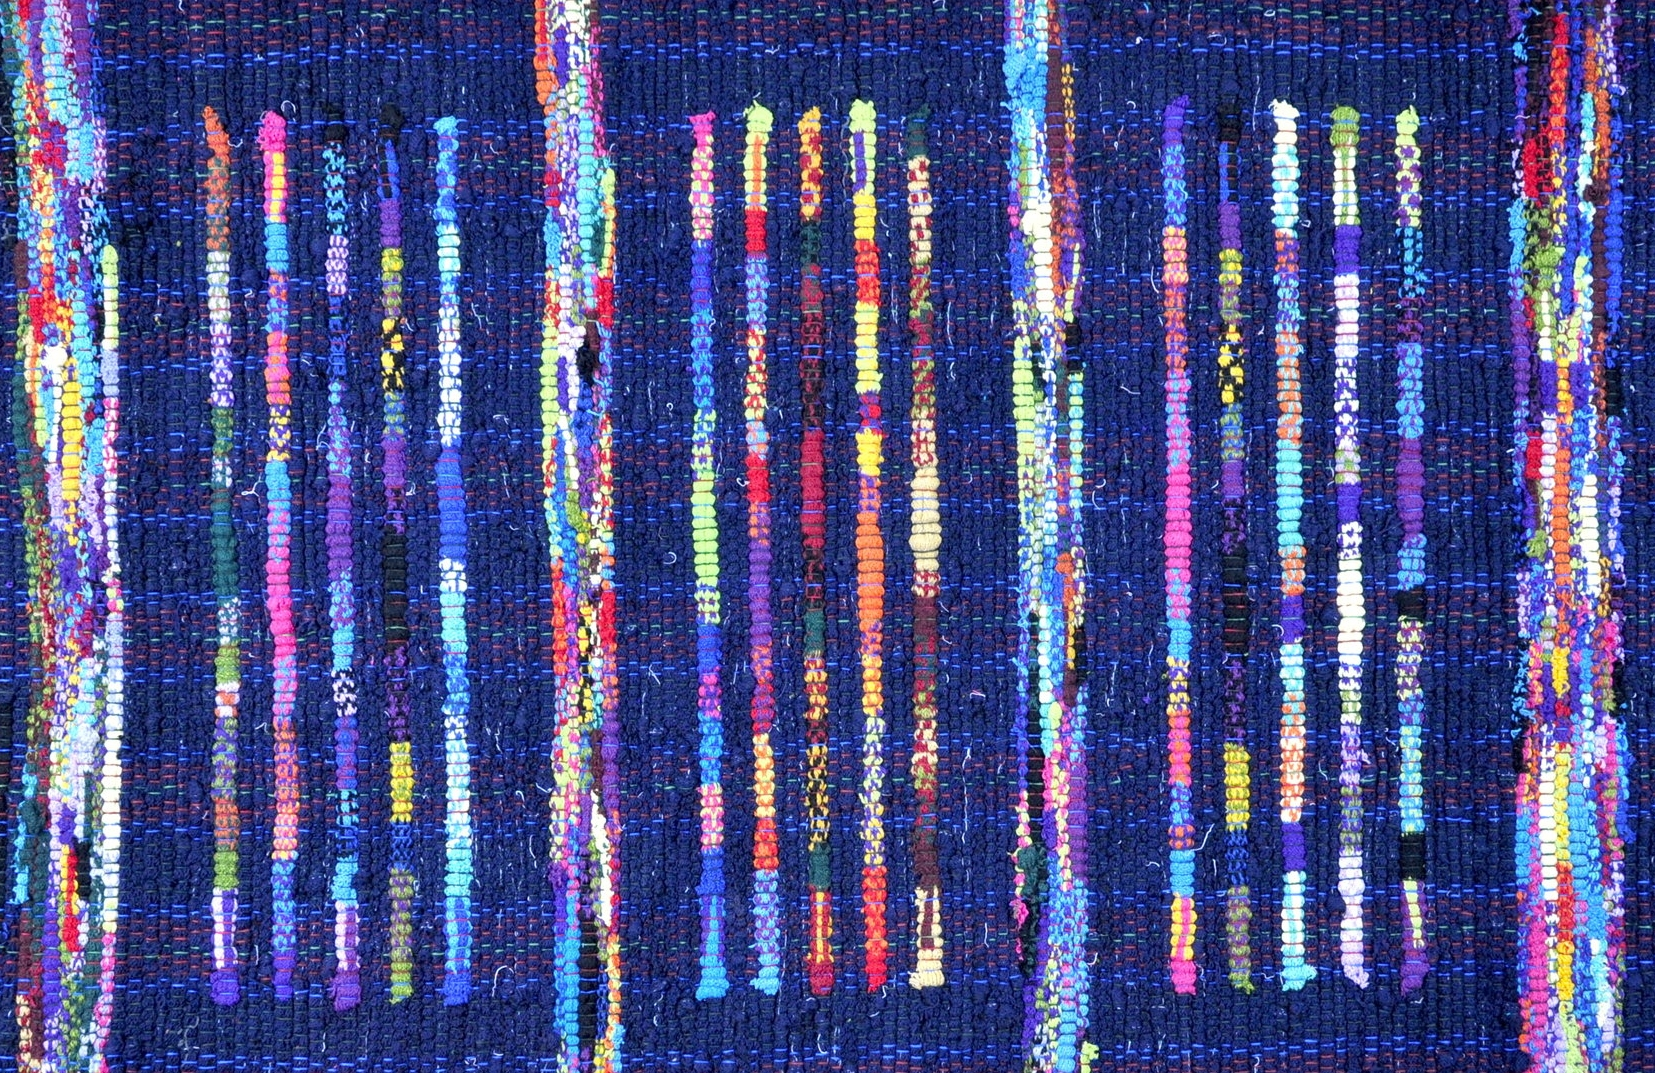 Detail of a rug woven from our scraps